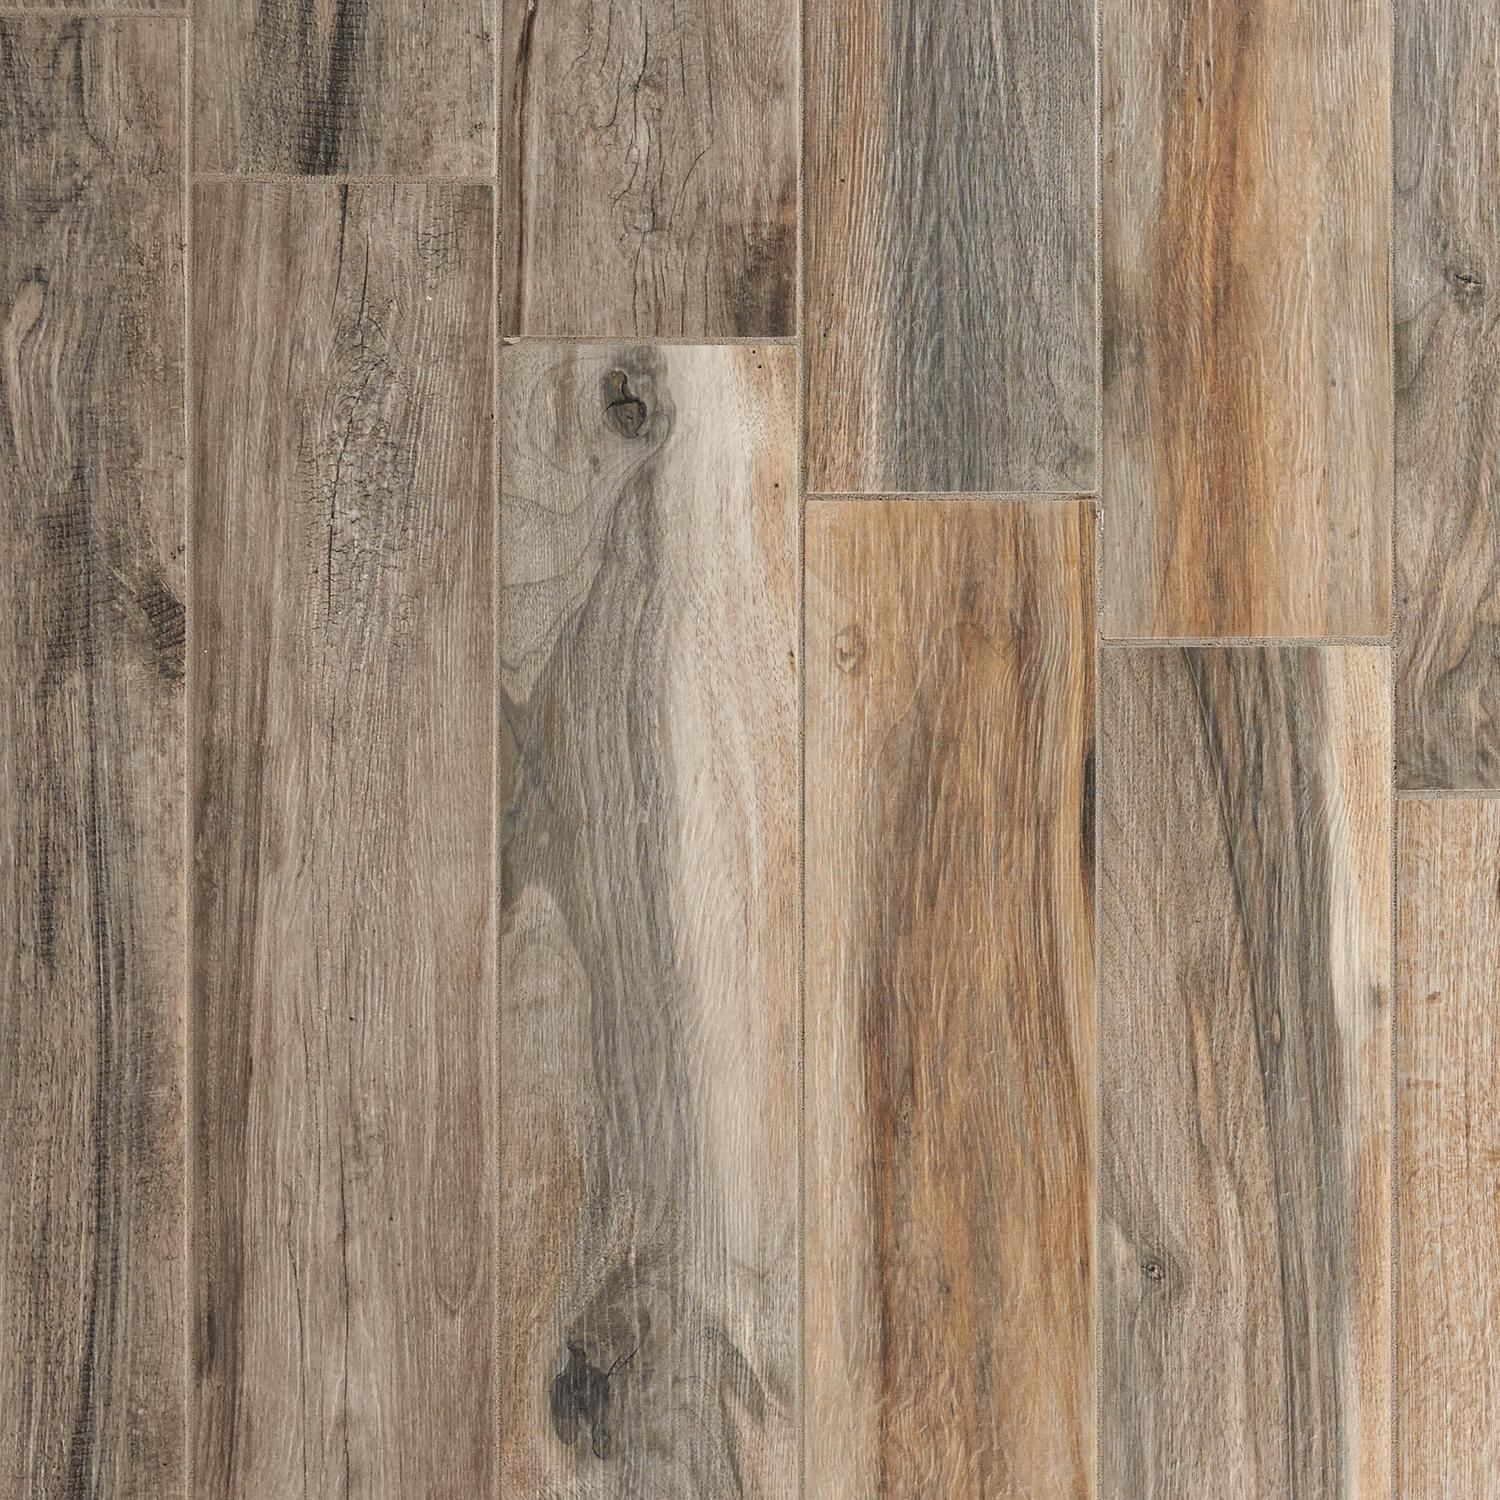 Soft Ash Wood Plank Porcelain Tile 6in X 40in 100105923 Floor And Decor